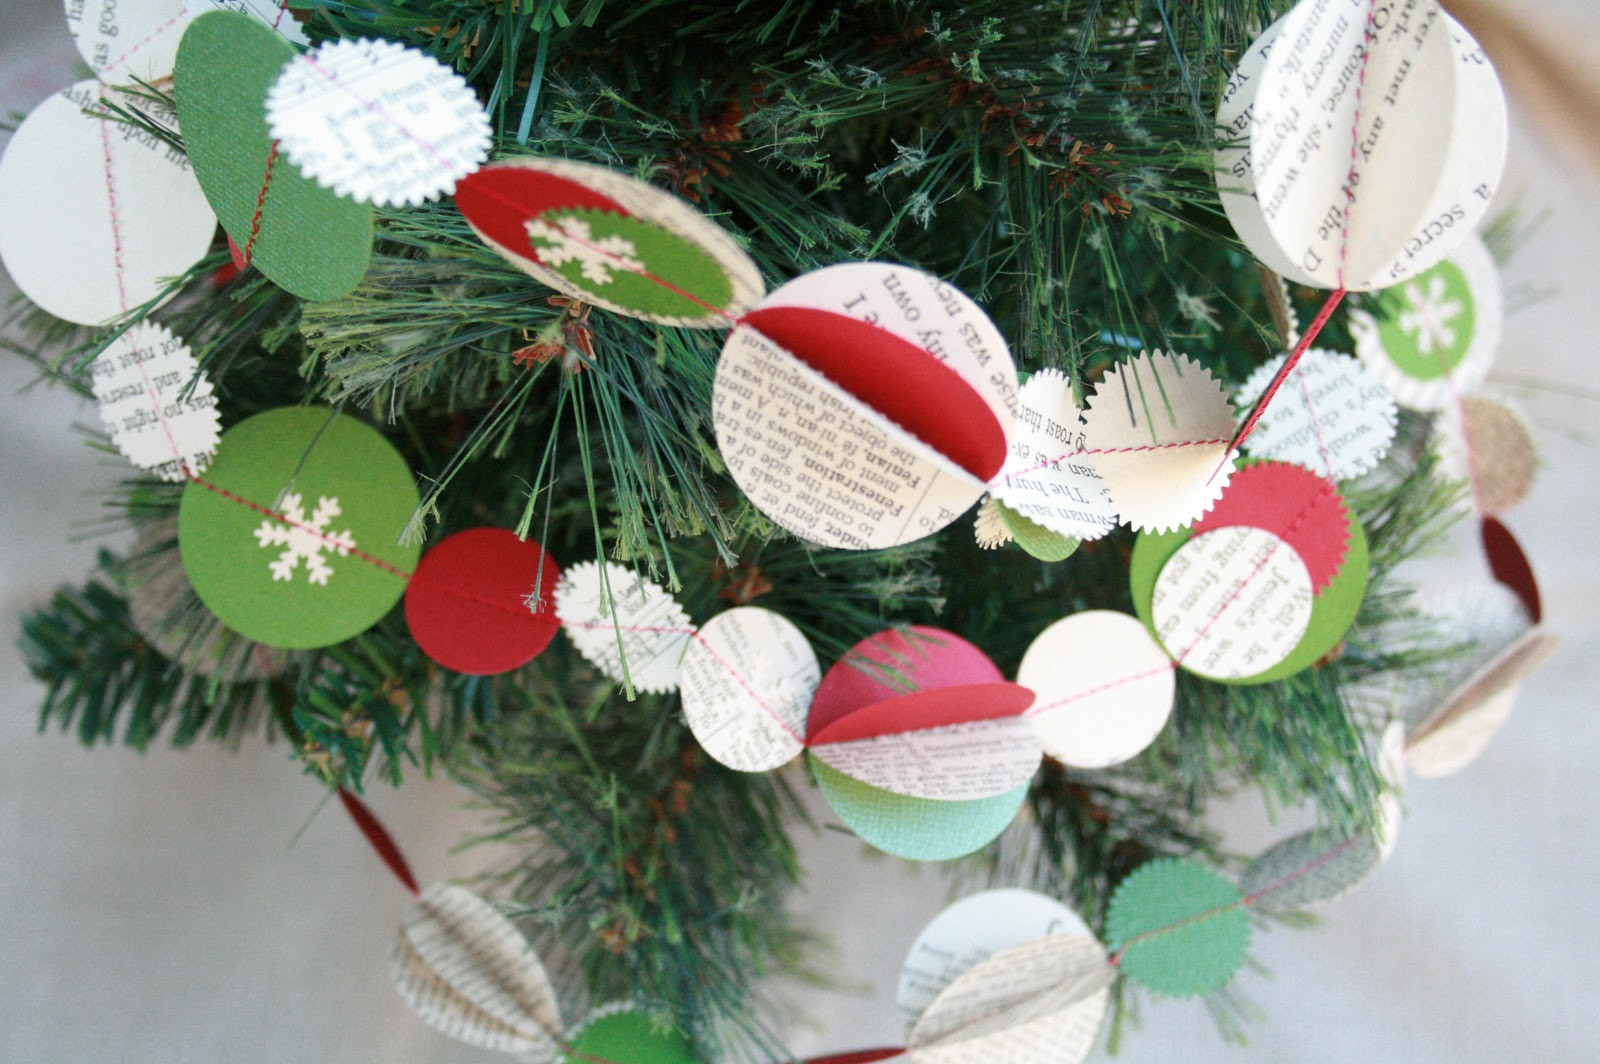 Best ideas about DIY Garland Christmas . Save or Pin The Creative Place DIY Festive Holiday Garland Now.